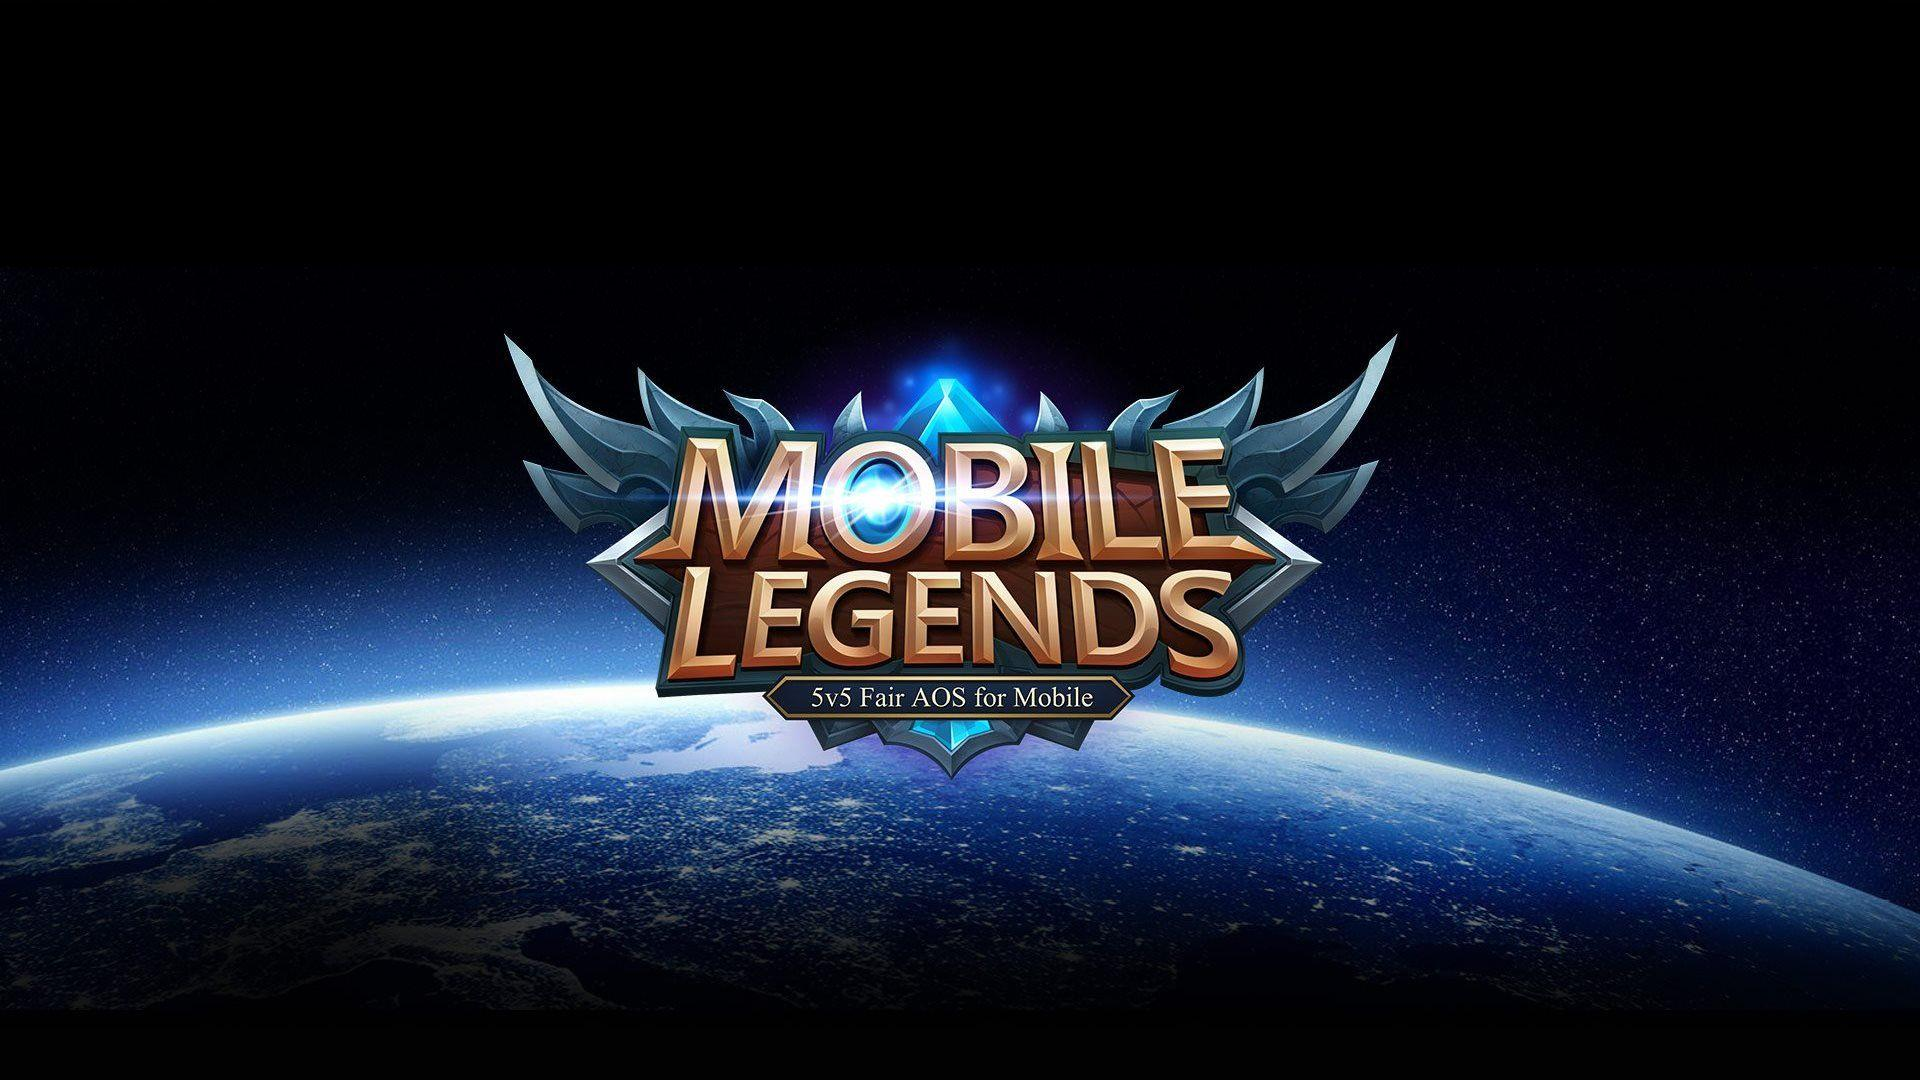 Kumpulan quotes marksman Mobile legends part